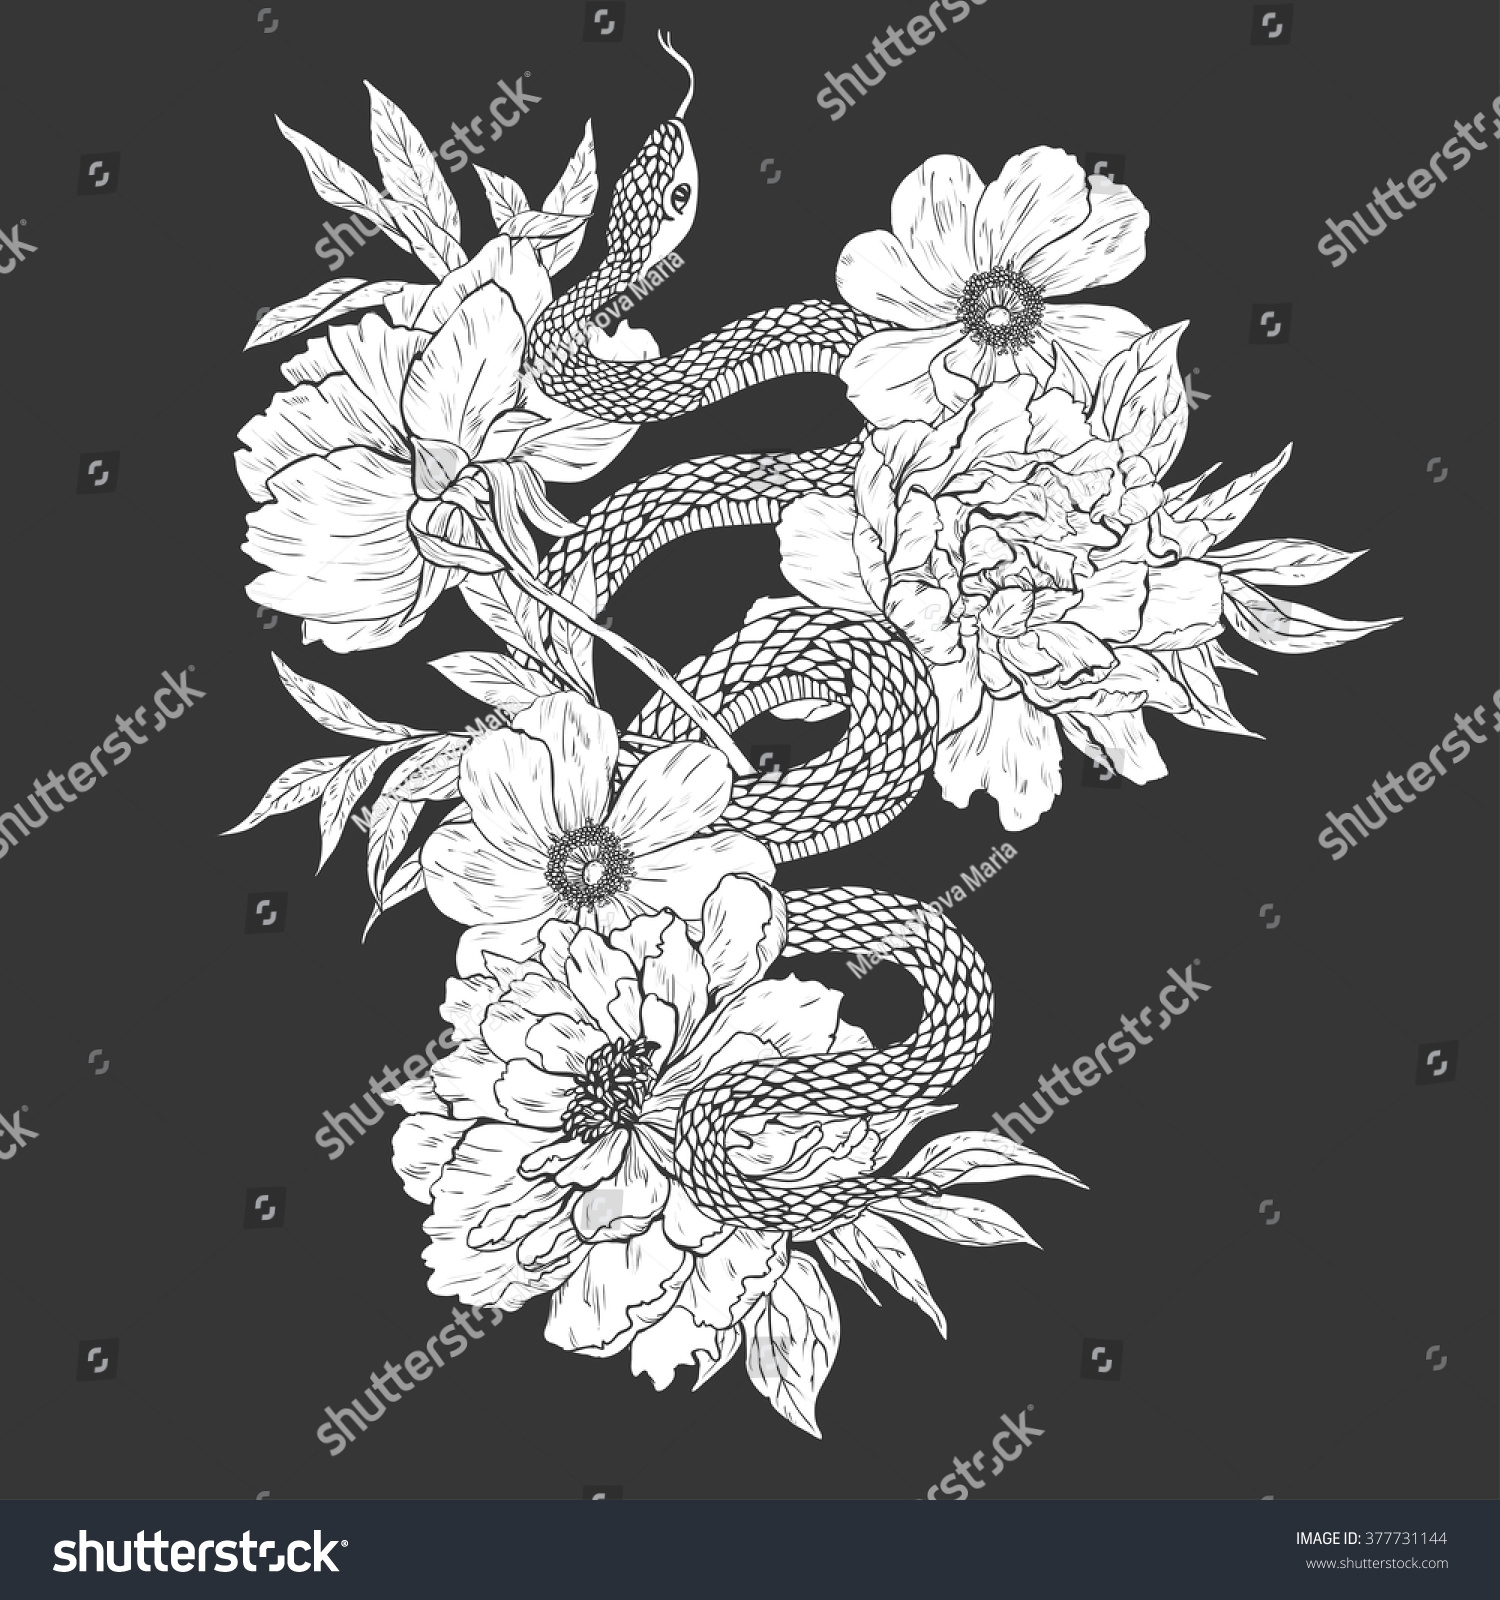 Snakes And Flowers Tattoo Art Coloring Books Hand Drawn Vintage Vector Illustration Isolated